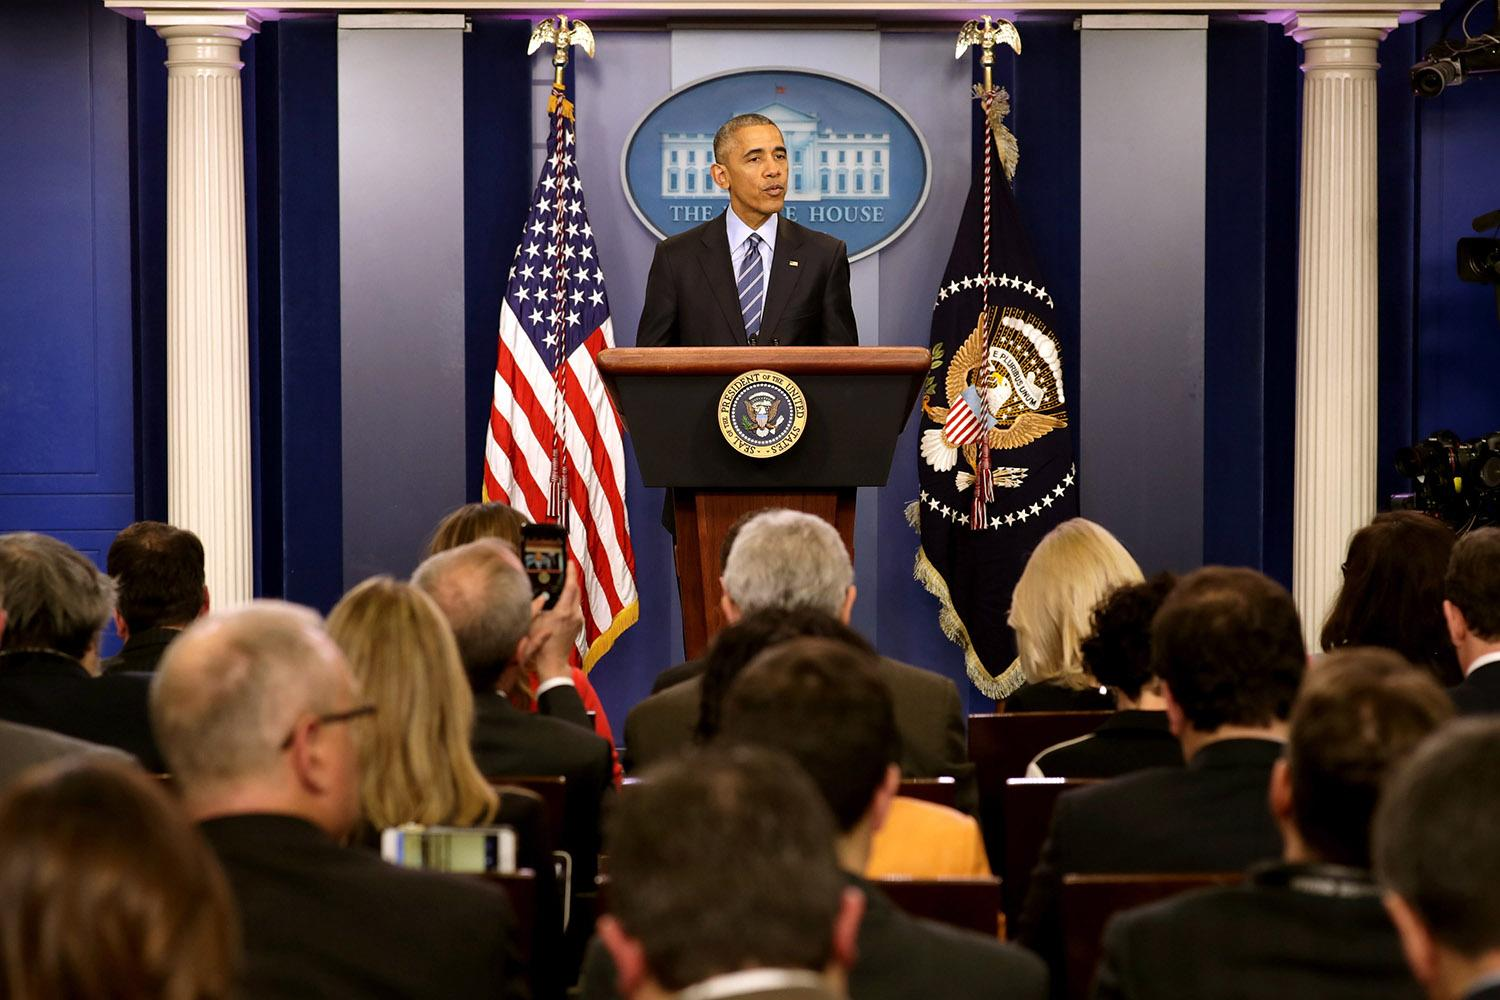 <p>U.S. President Barack Obama speaks during a news conference in the Brady Press Briefing Room at the White House Dec.16, 2016 in Washington, DC. In what could be the last press conference of his presidency, afterwards Obama will be leaving for his annual family vacation in Hawaii. (Photo: Chip Somodevilla/Getty Images) </p>